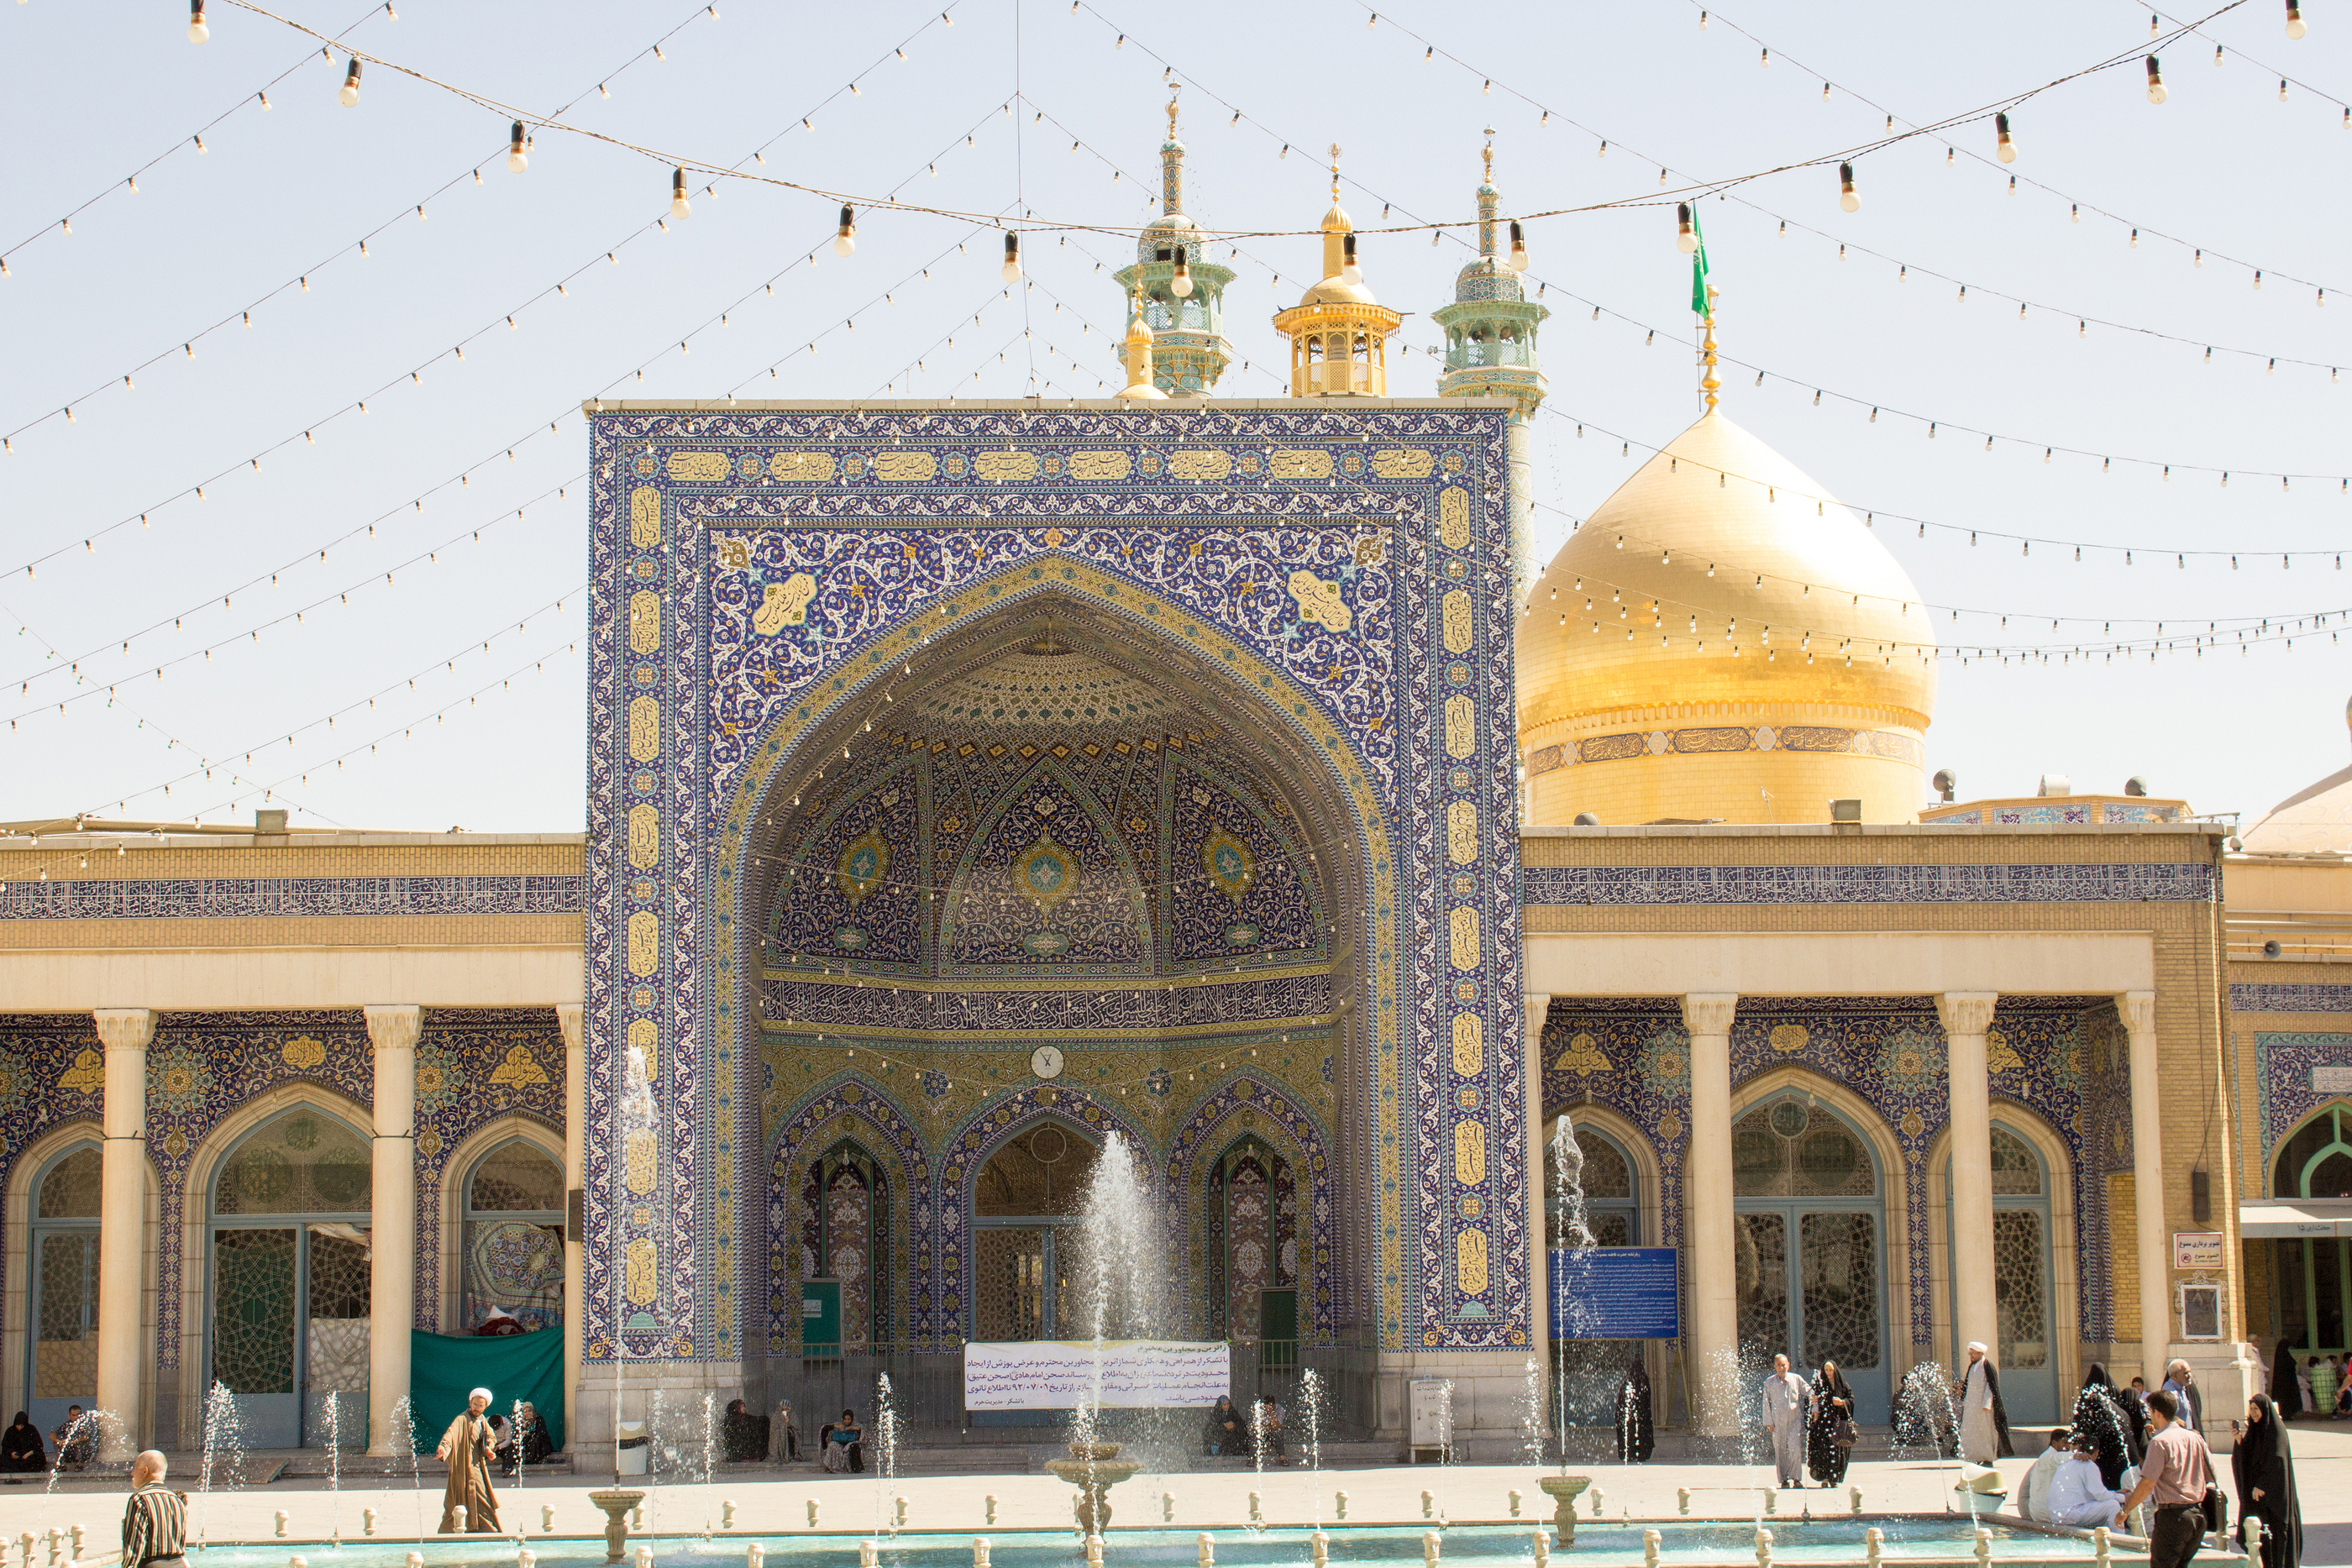 Qom, Iran - September 30, 2013: picture of the shrine of Fatima Almasomh, It is the shrine to the Shiite sect and is located in the city of Qom. And contains a huge golden dome and a number of minarets aureus and the huge doors.